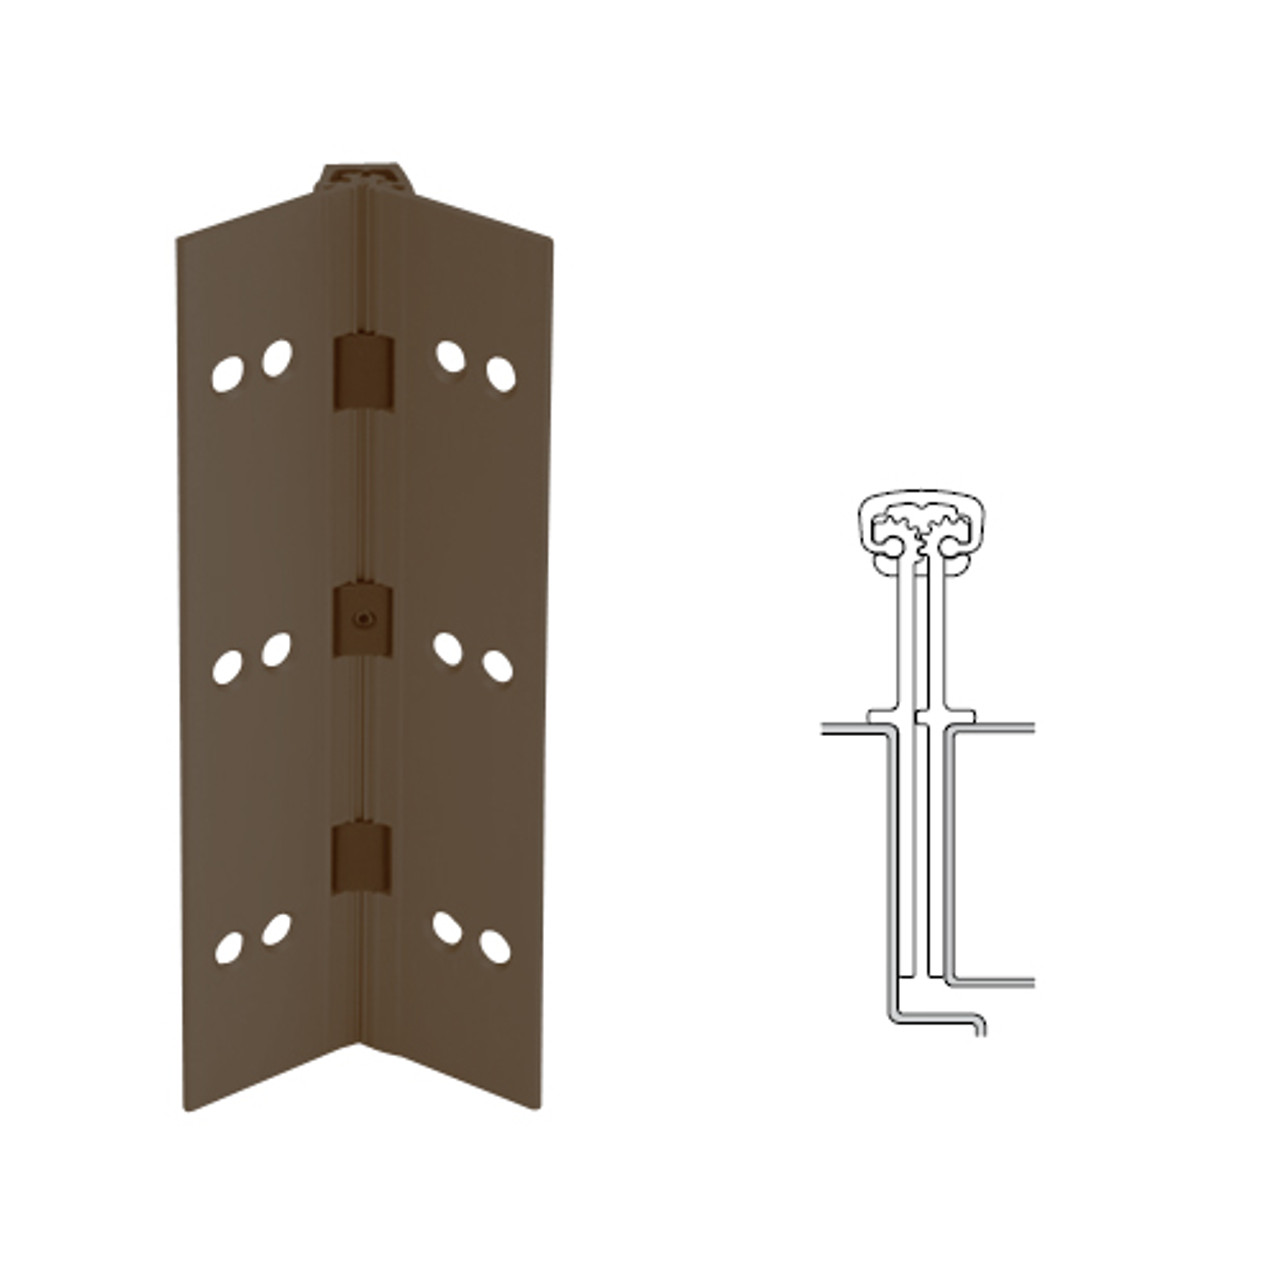 040XY-313AN-85 IVES Full Mortise Continuous Geared Hinges in Dark Bronze Anodized